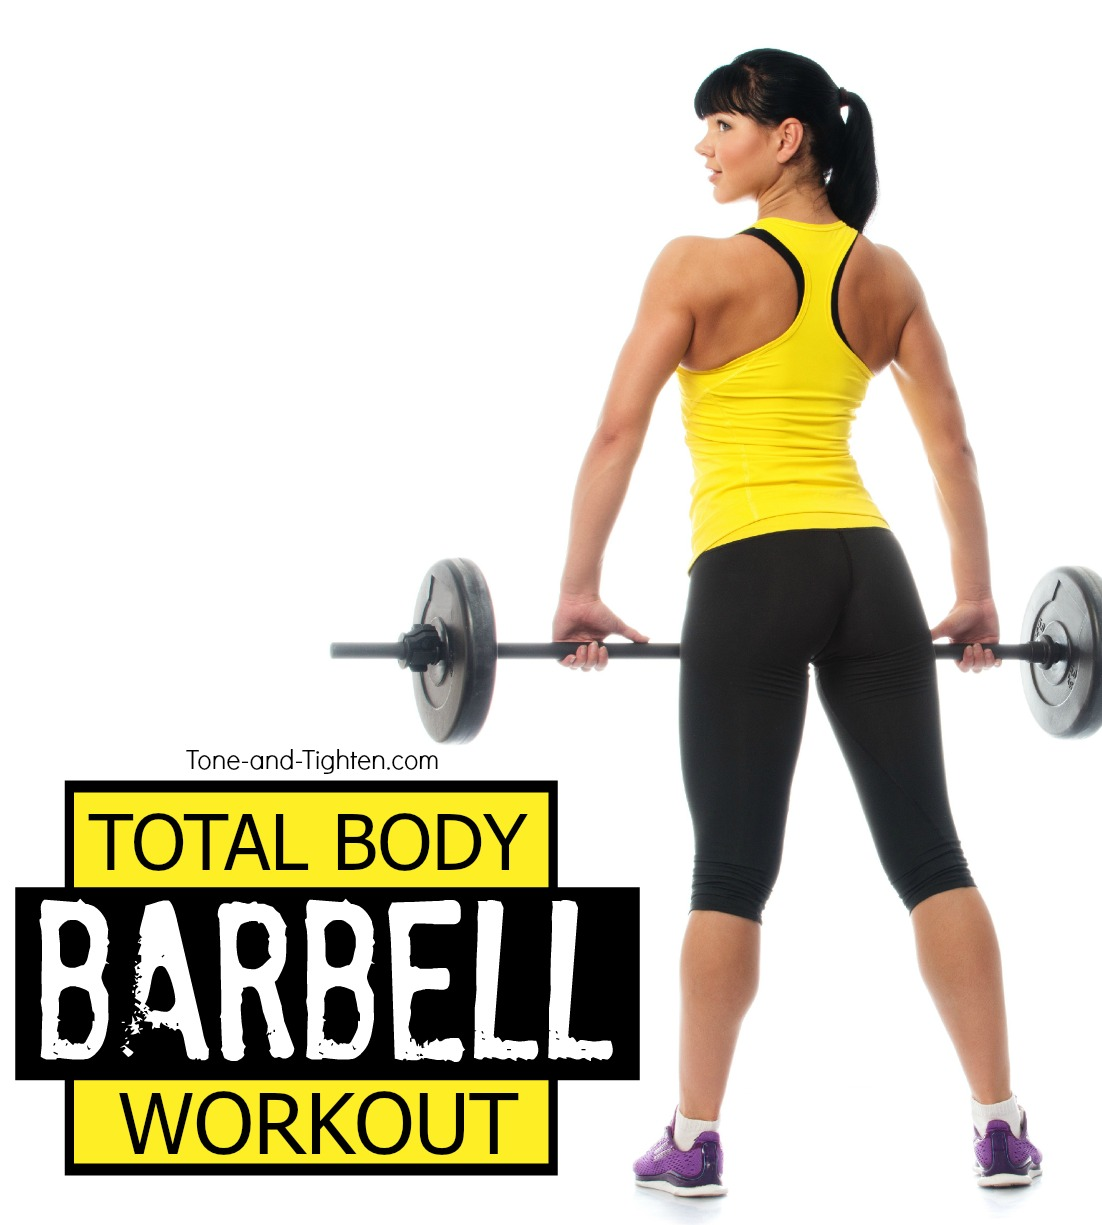 Total Body Barbell Workout Beginner Tone Tighten